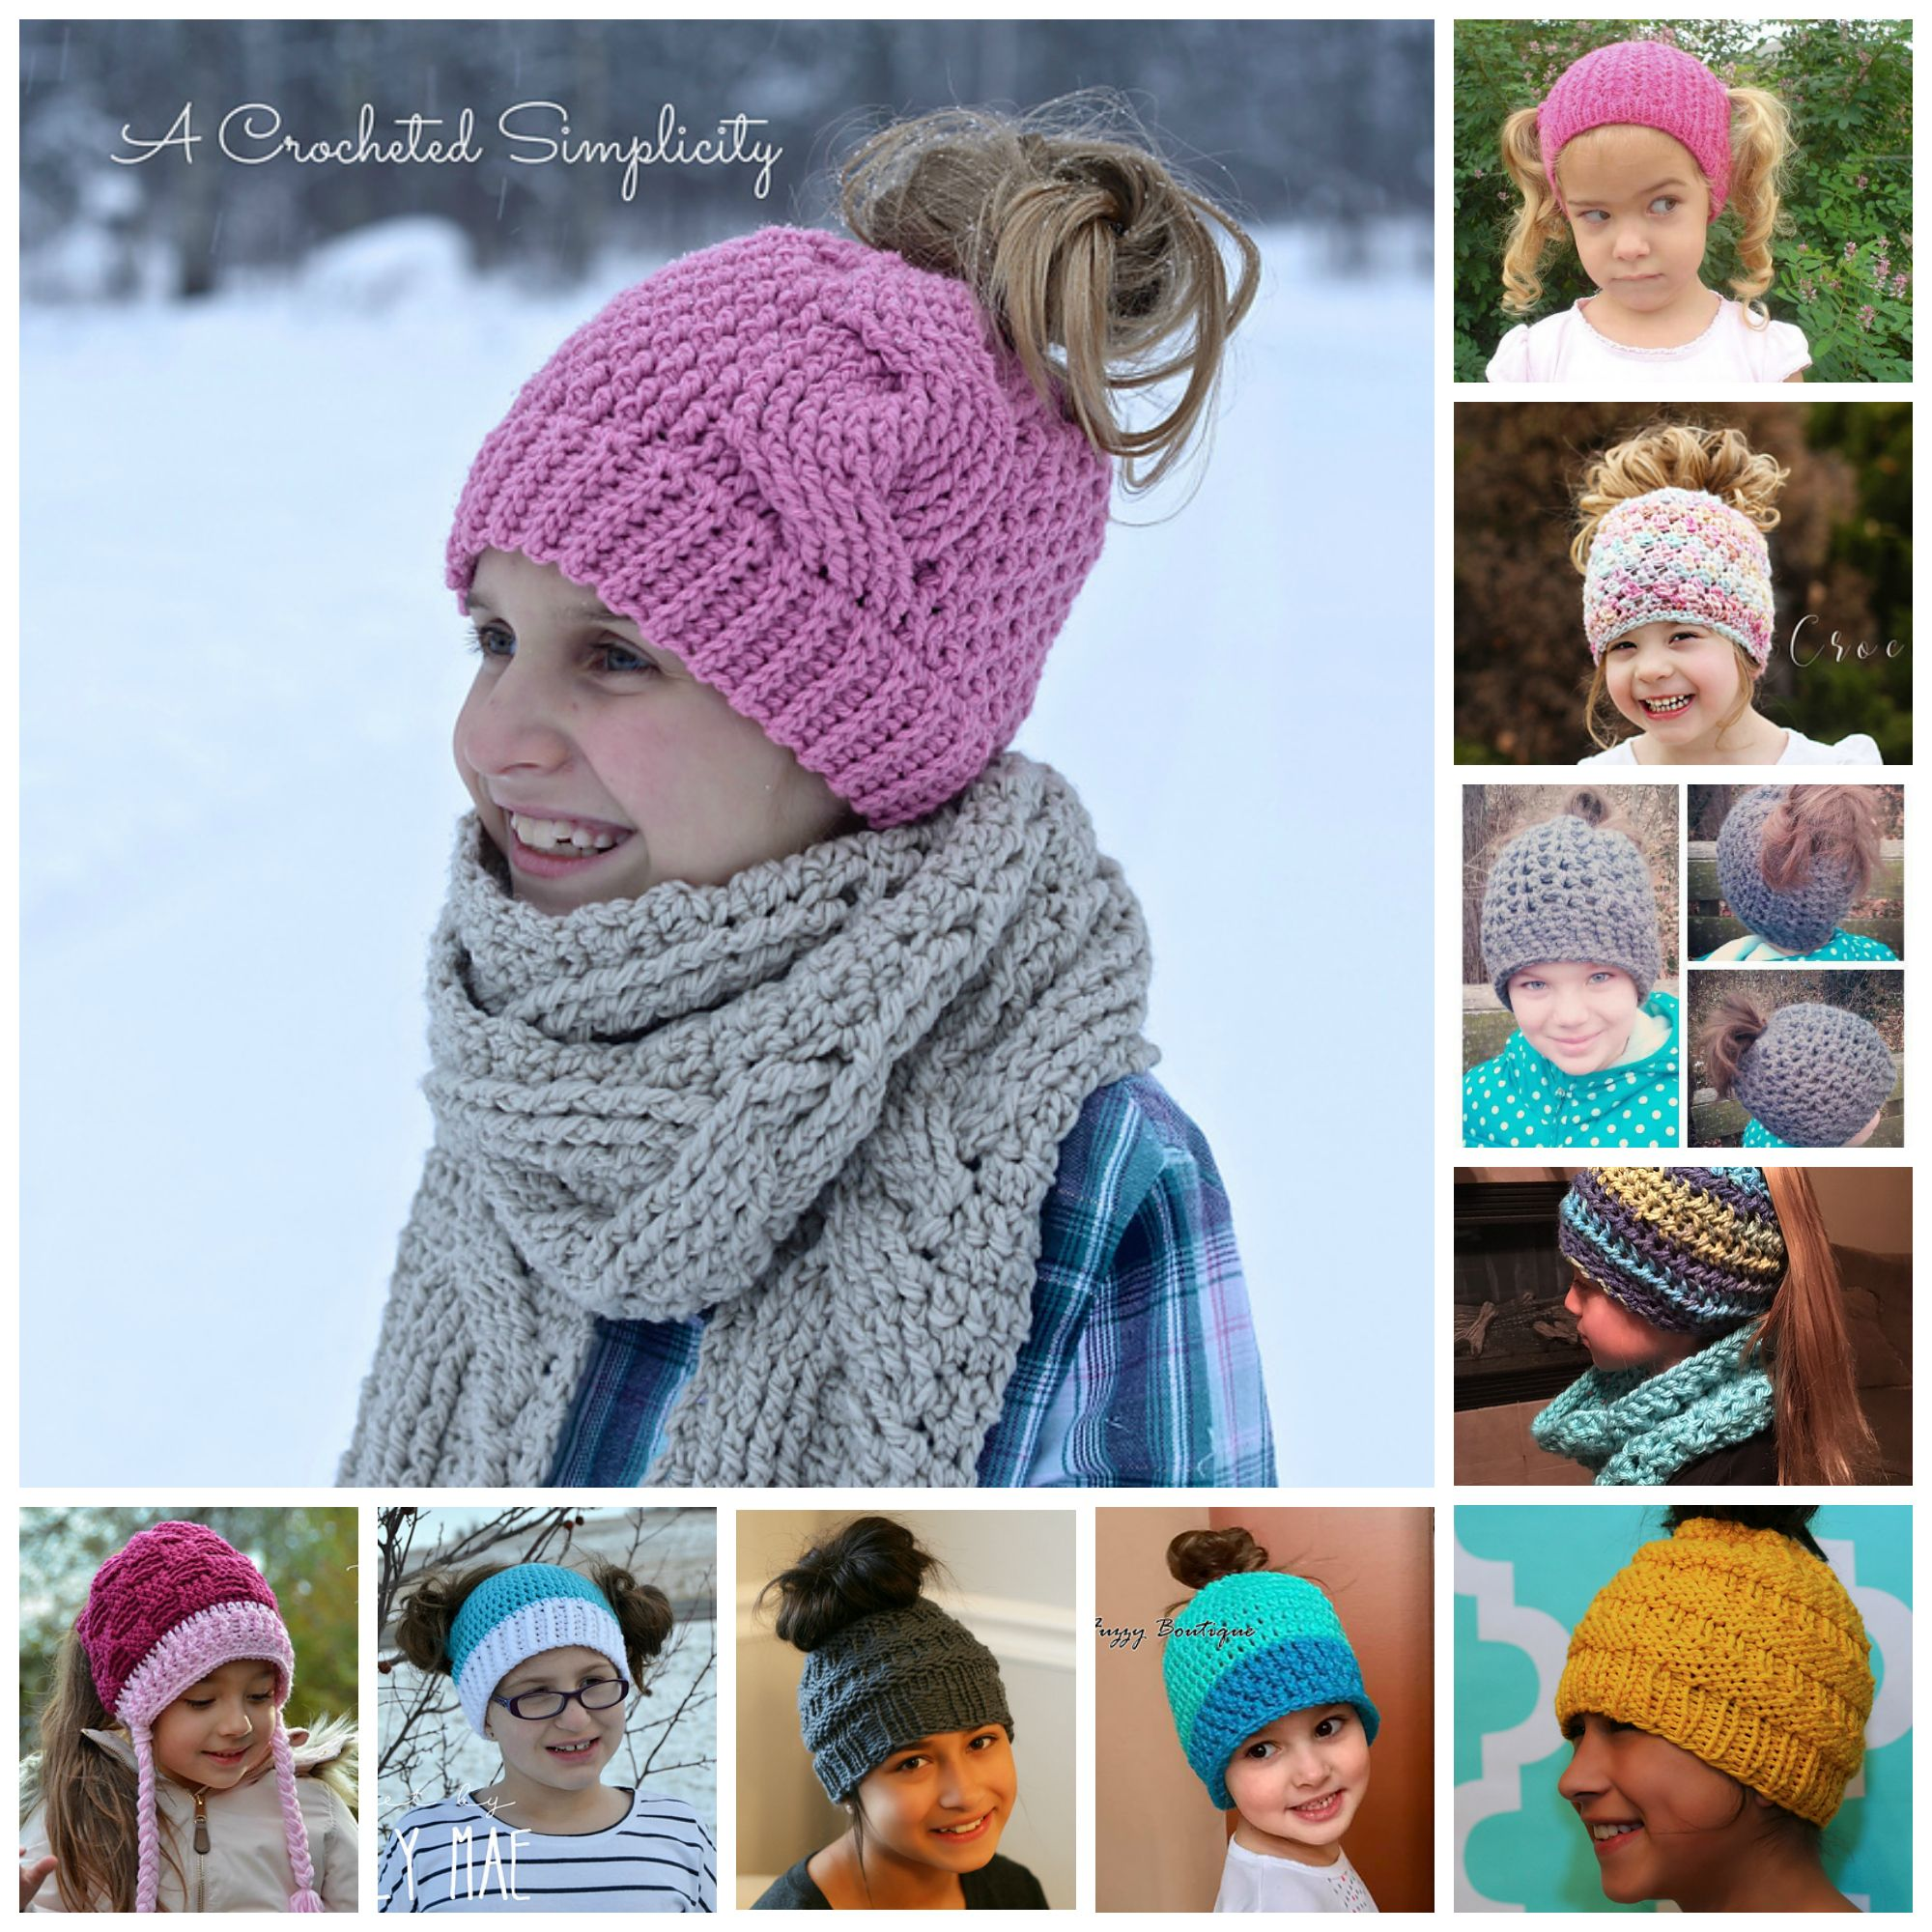 The Best Ponytail Hat Patterns (aka Messy Bun Beanies) for Little Girls! #kni...